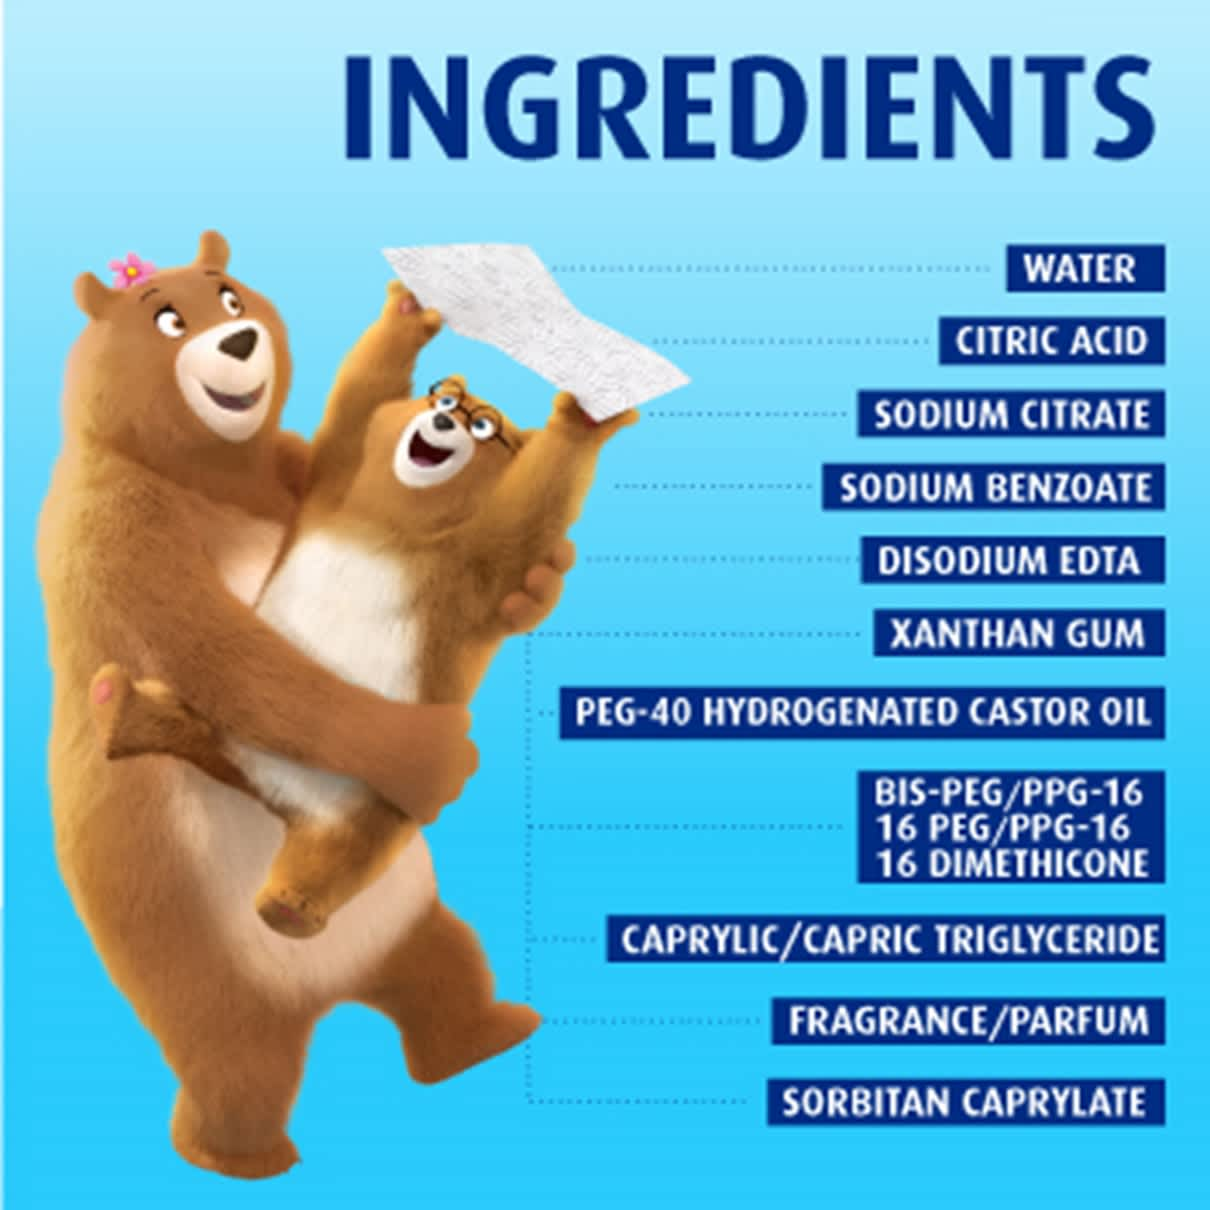 Ingredients used in flushable toilet wipes